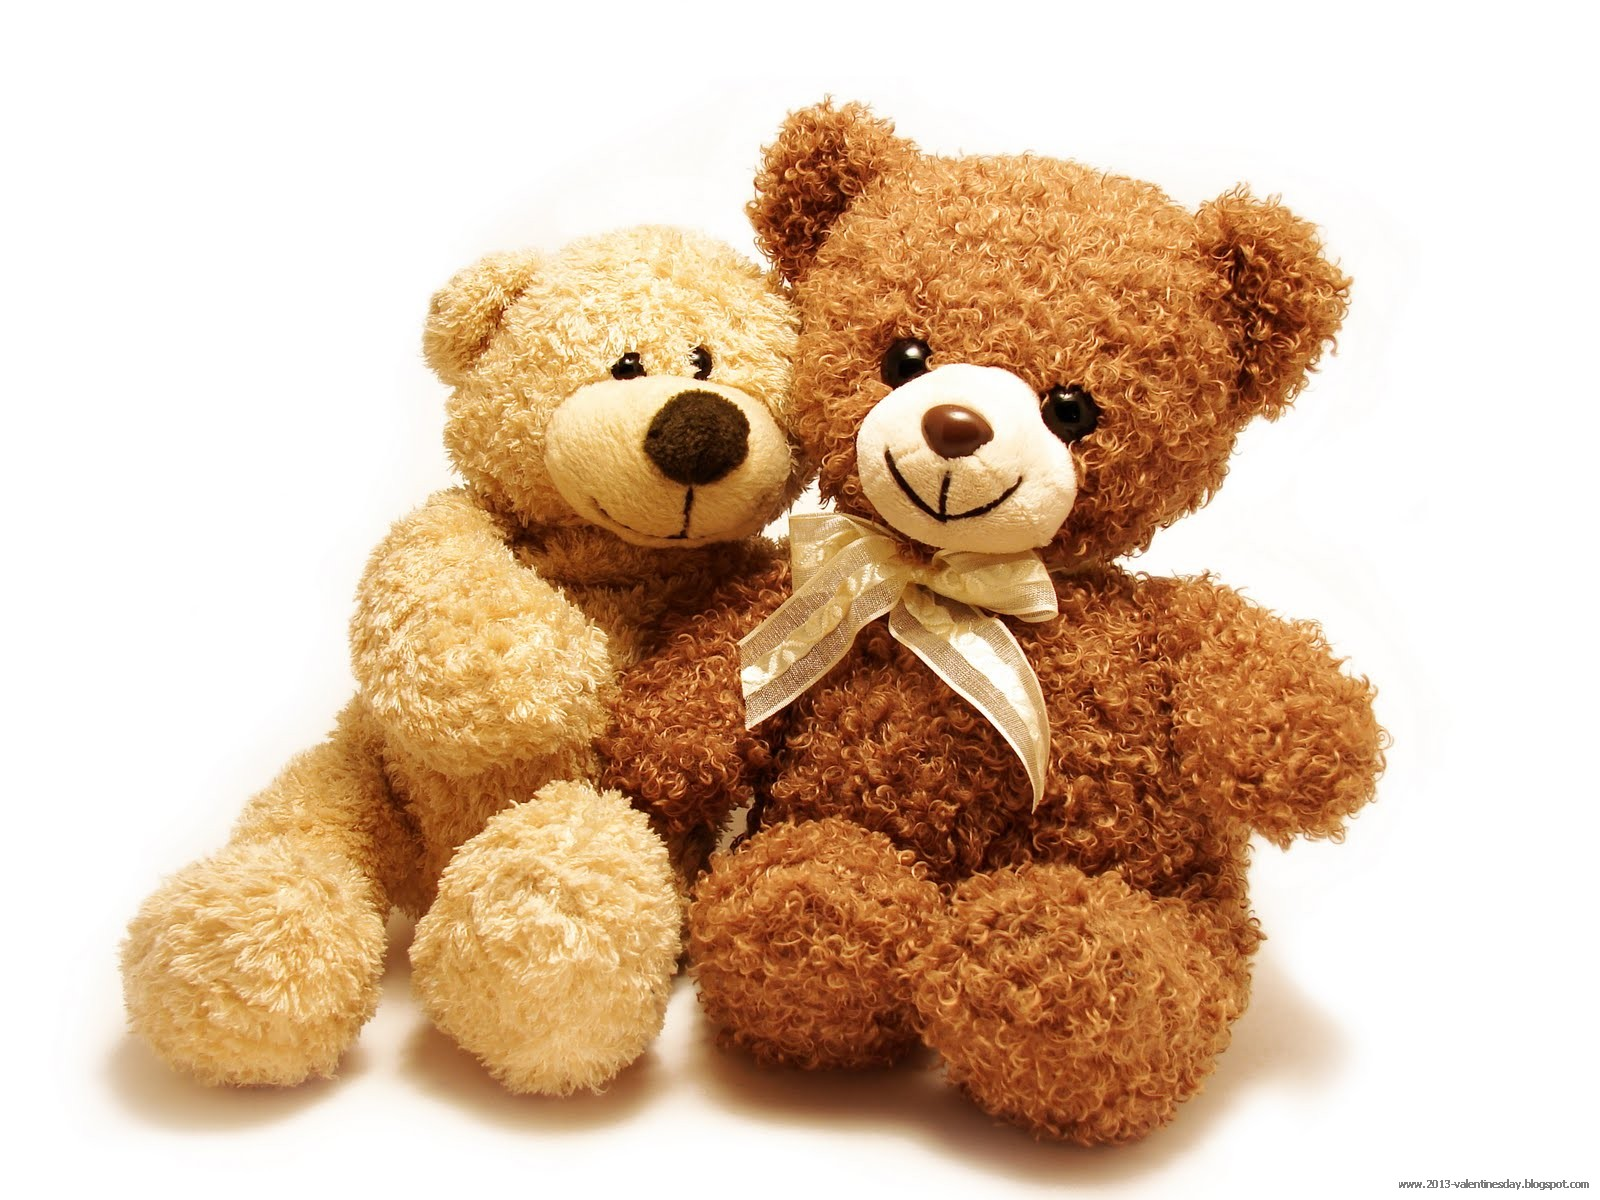 i love you teddy bear latest wallpapers - stylish dp's